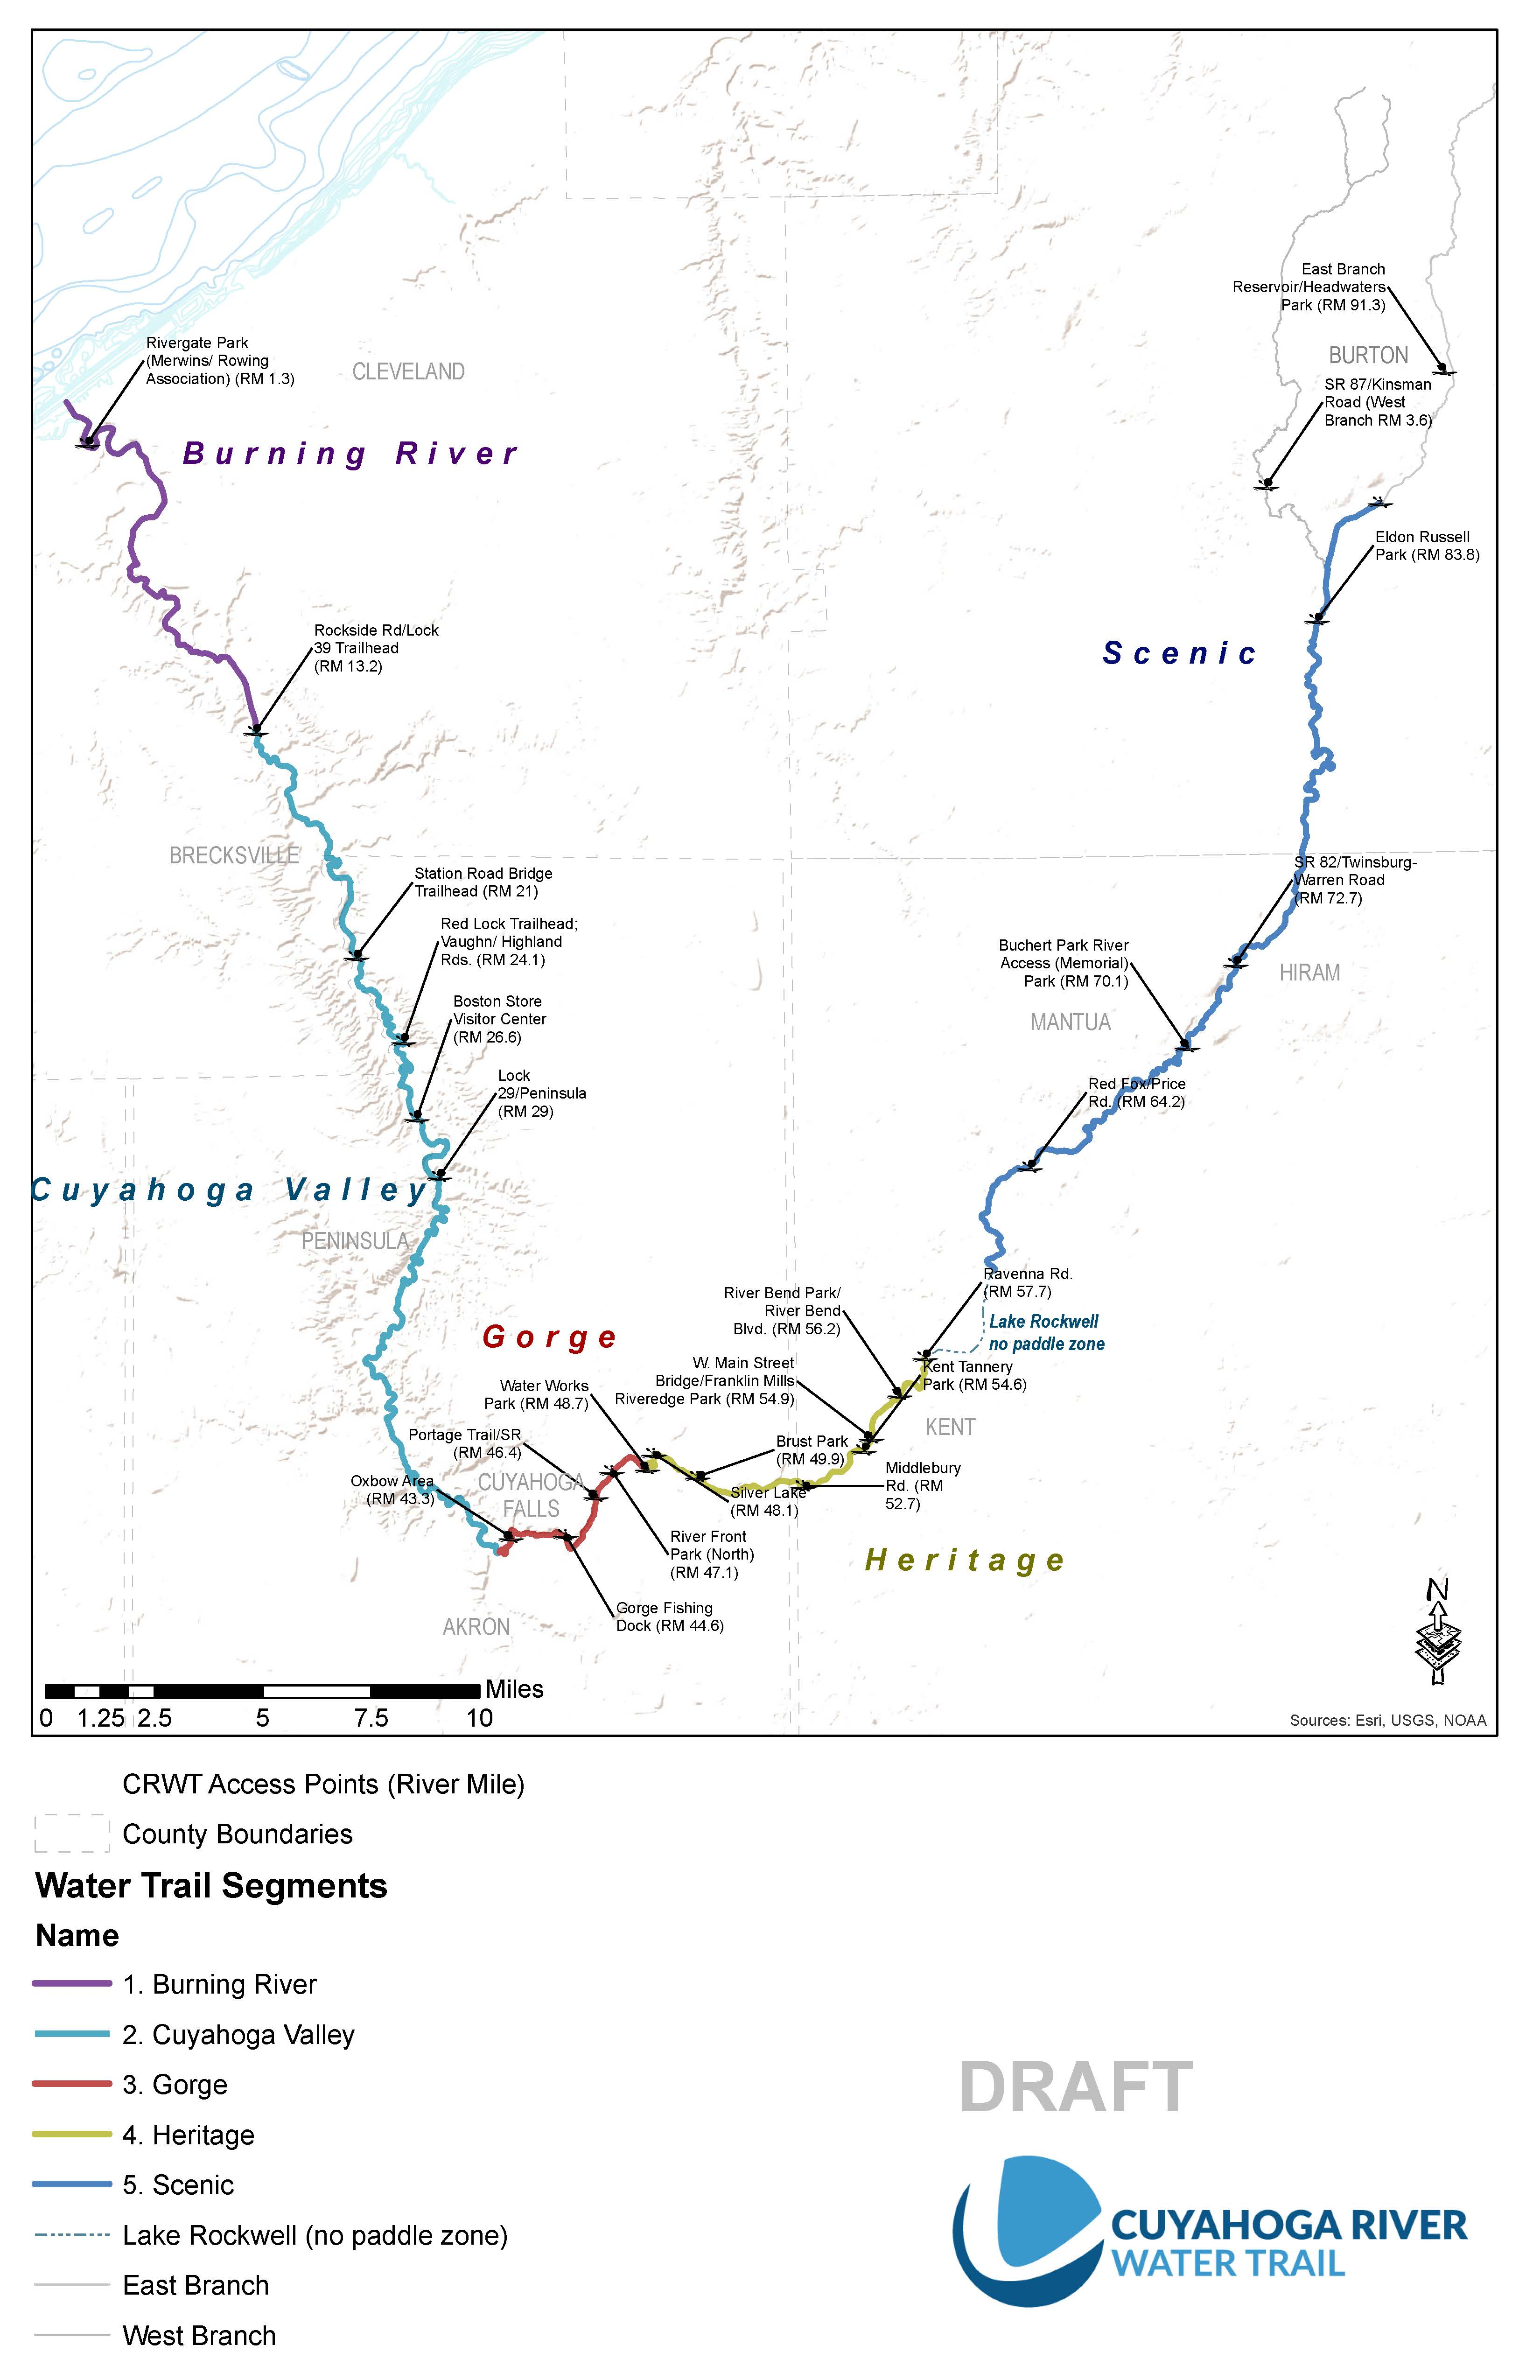 Cuyahoga River Water Trails - Get Involved